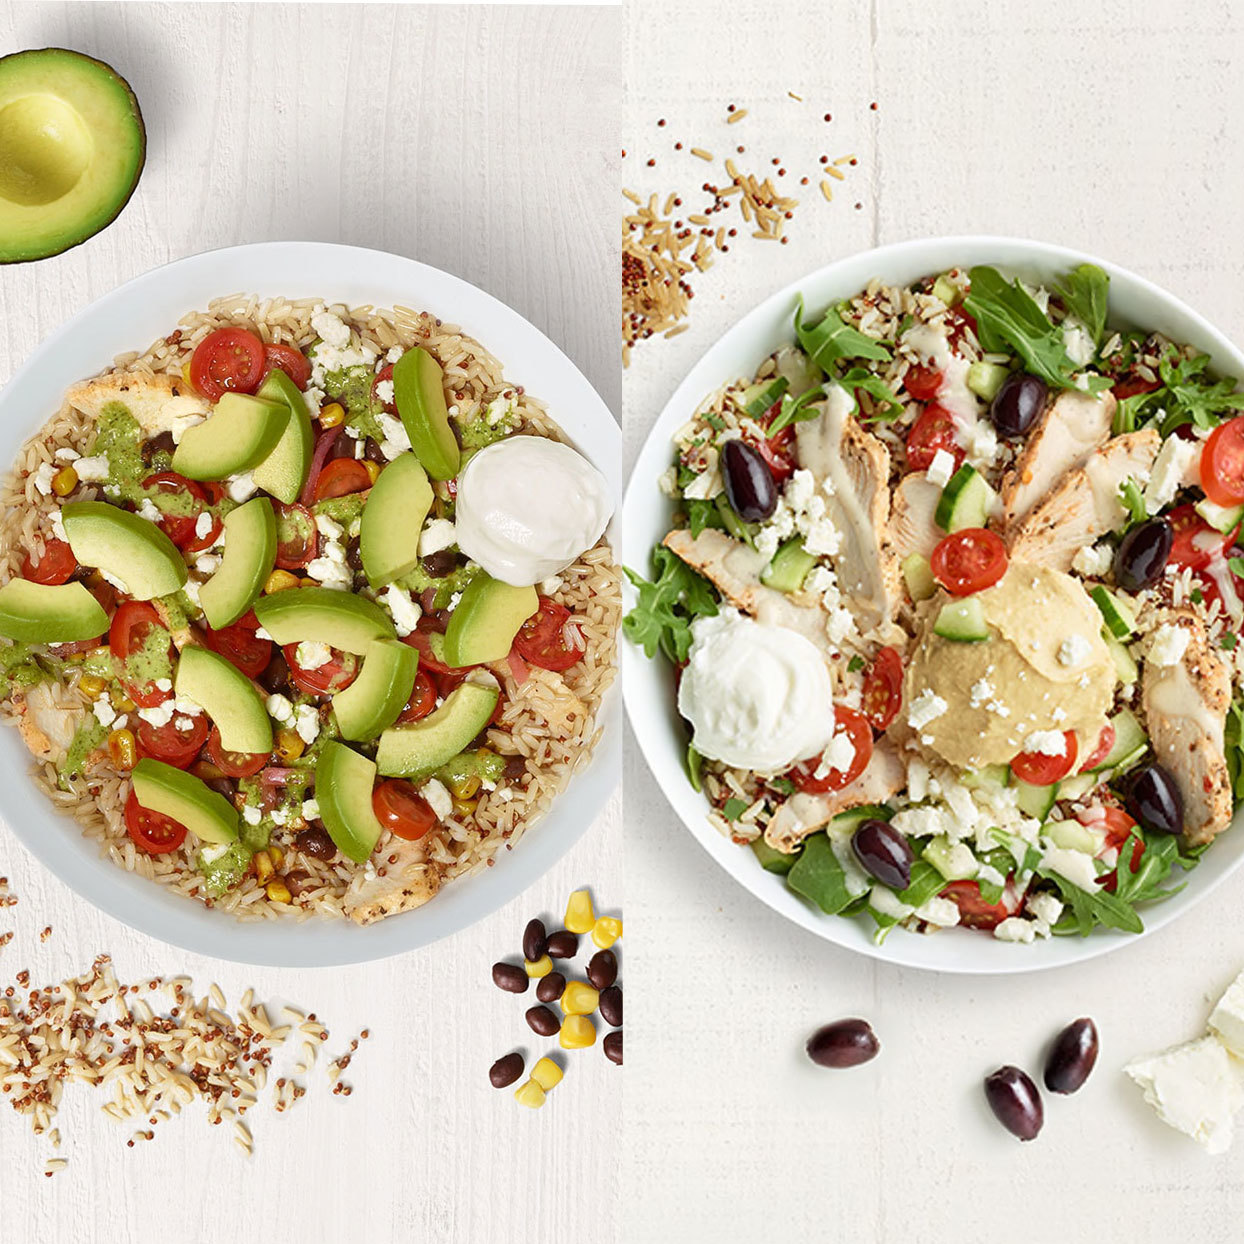 Panera Just Released 2 Healthy Grain Bowls—Here's What We Thought